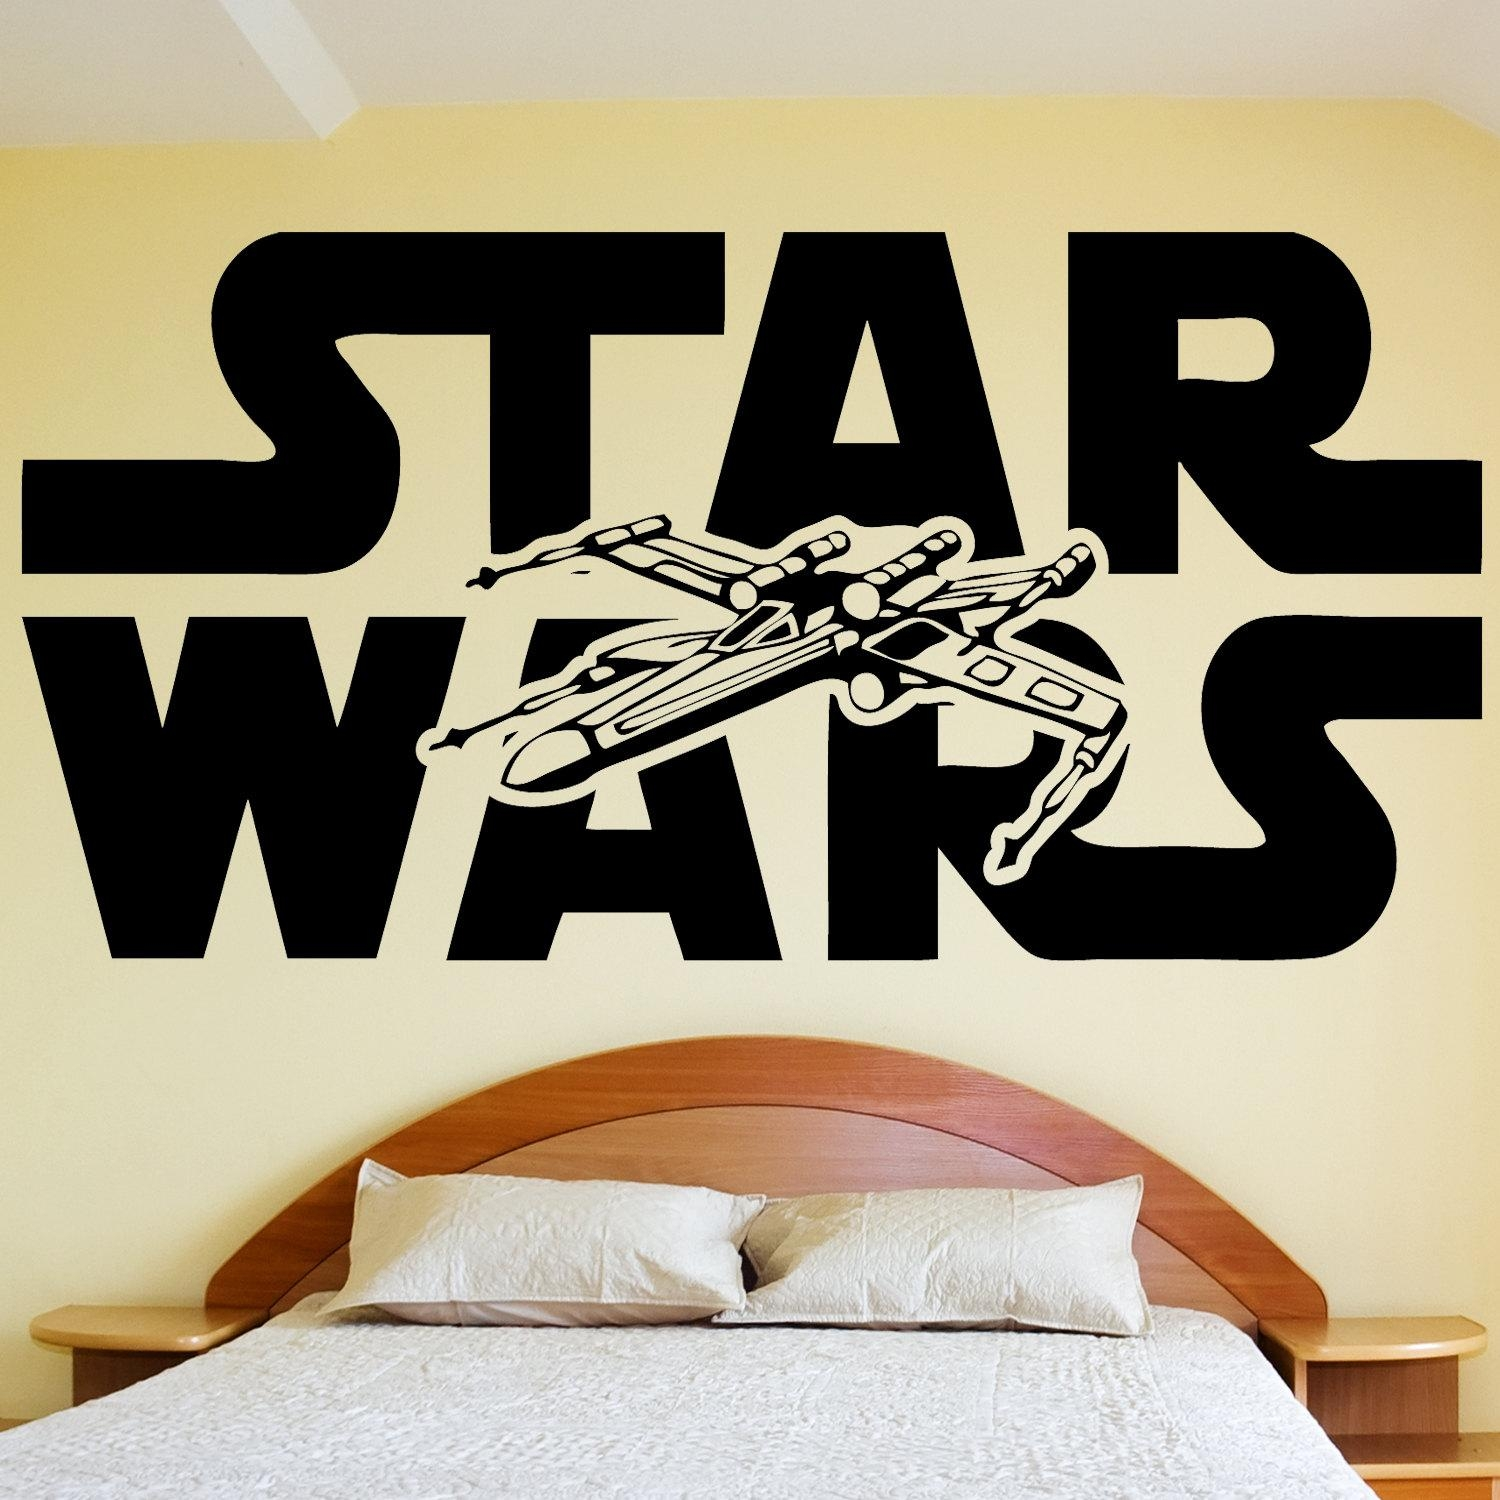 Wall Ideas: Star Wars Wall Decor Design (View 8 of 20)